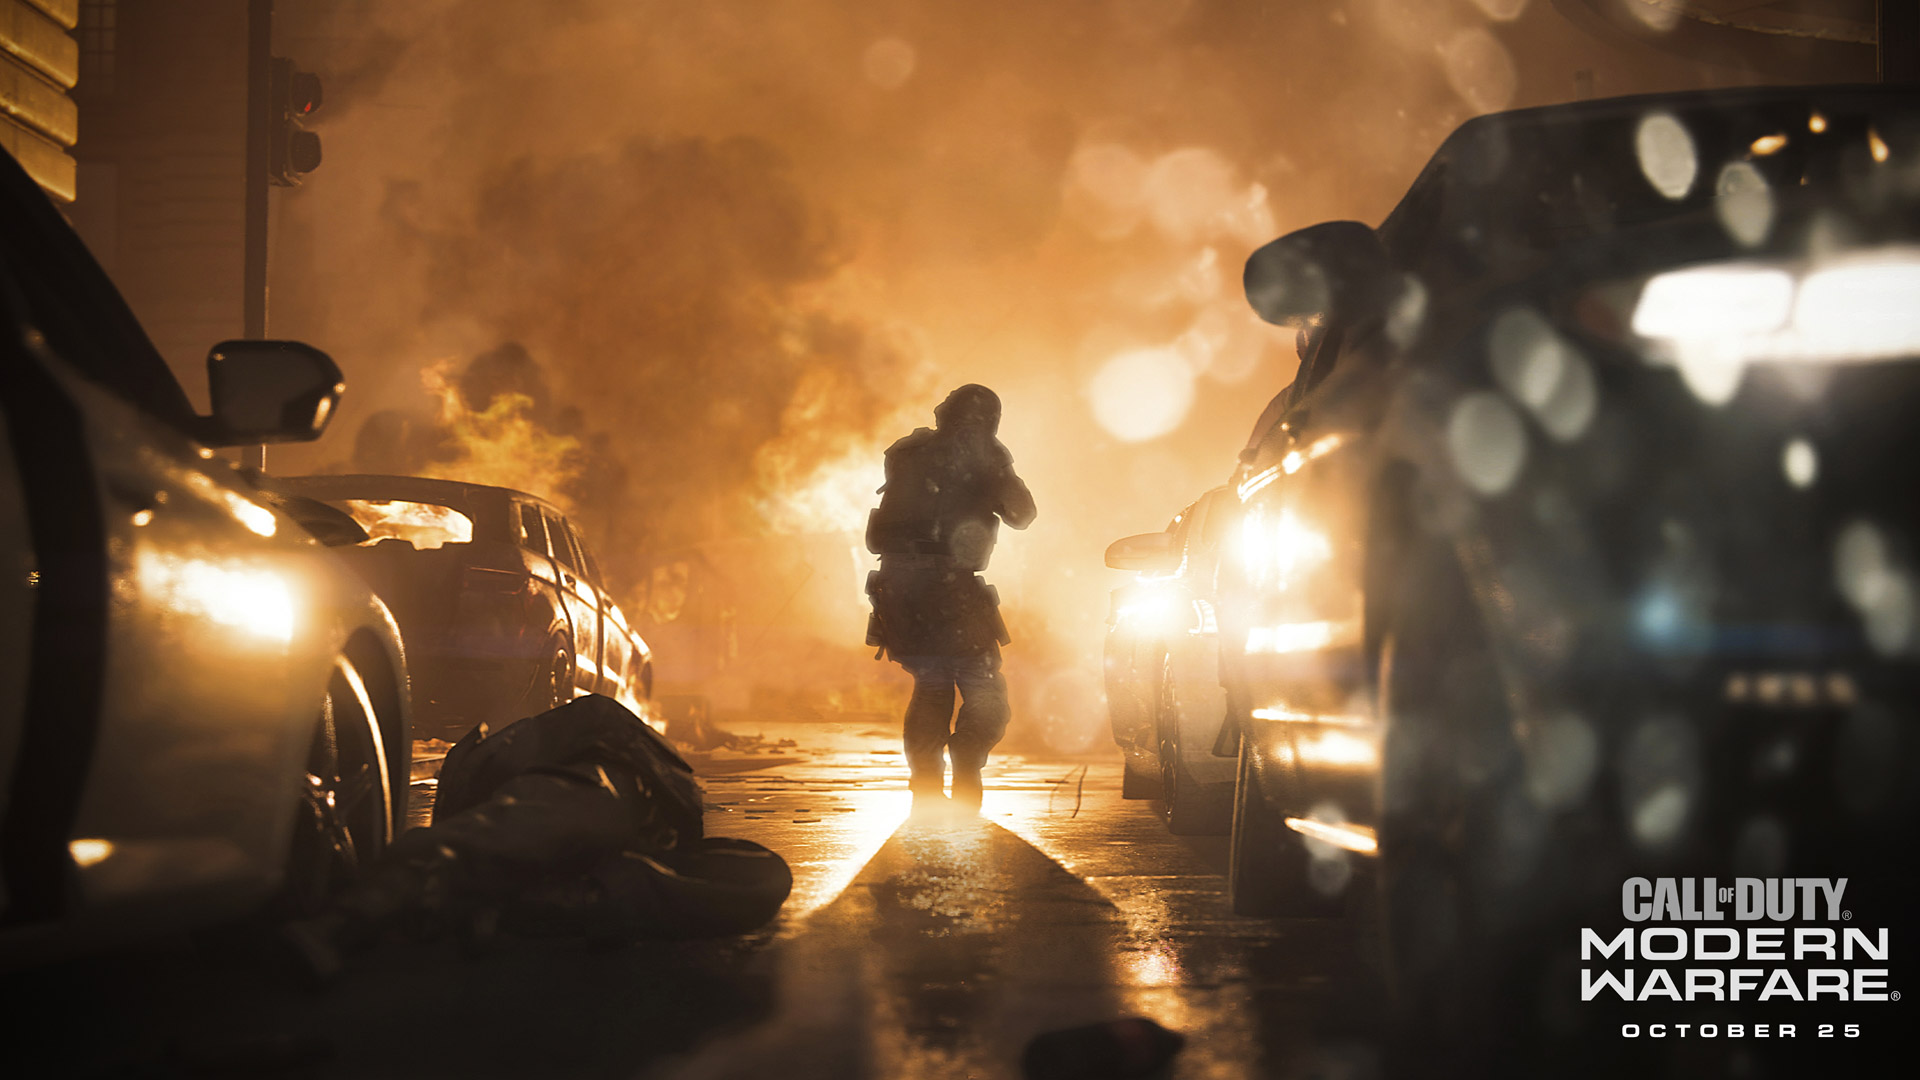 Free Call of Duty: Modern Warfare (2019) Wallpaper in 1920x1080